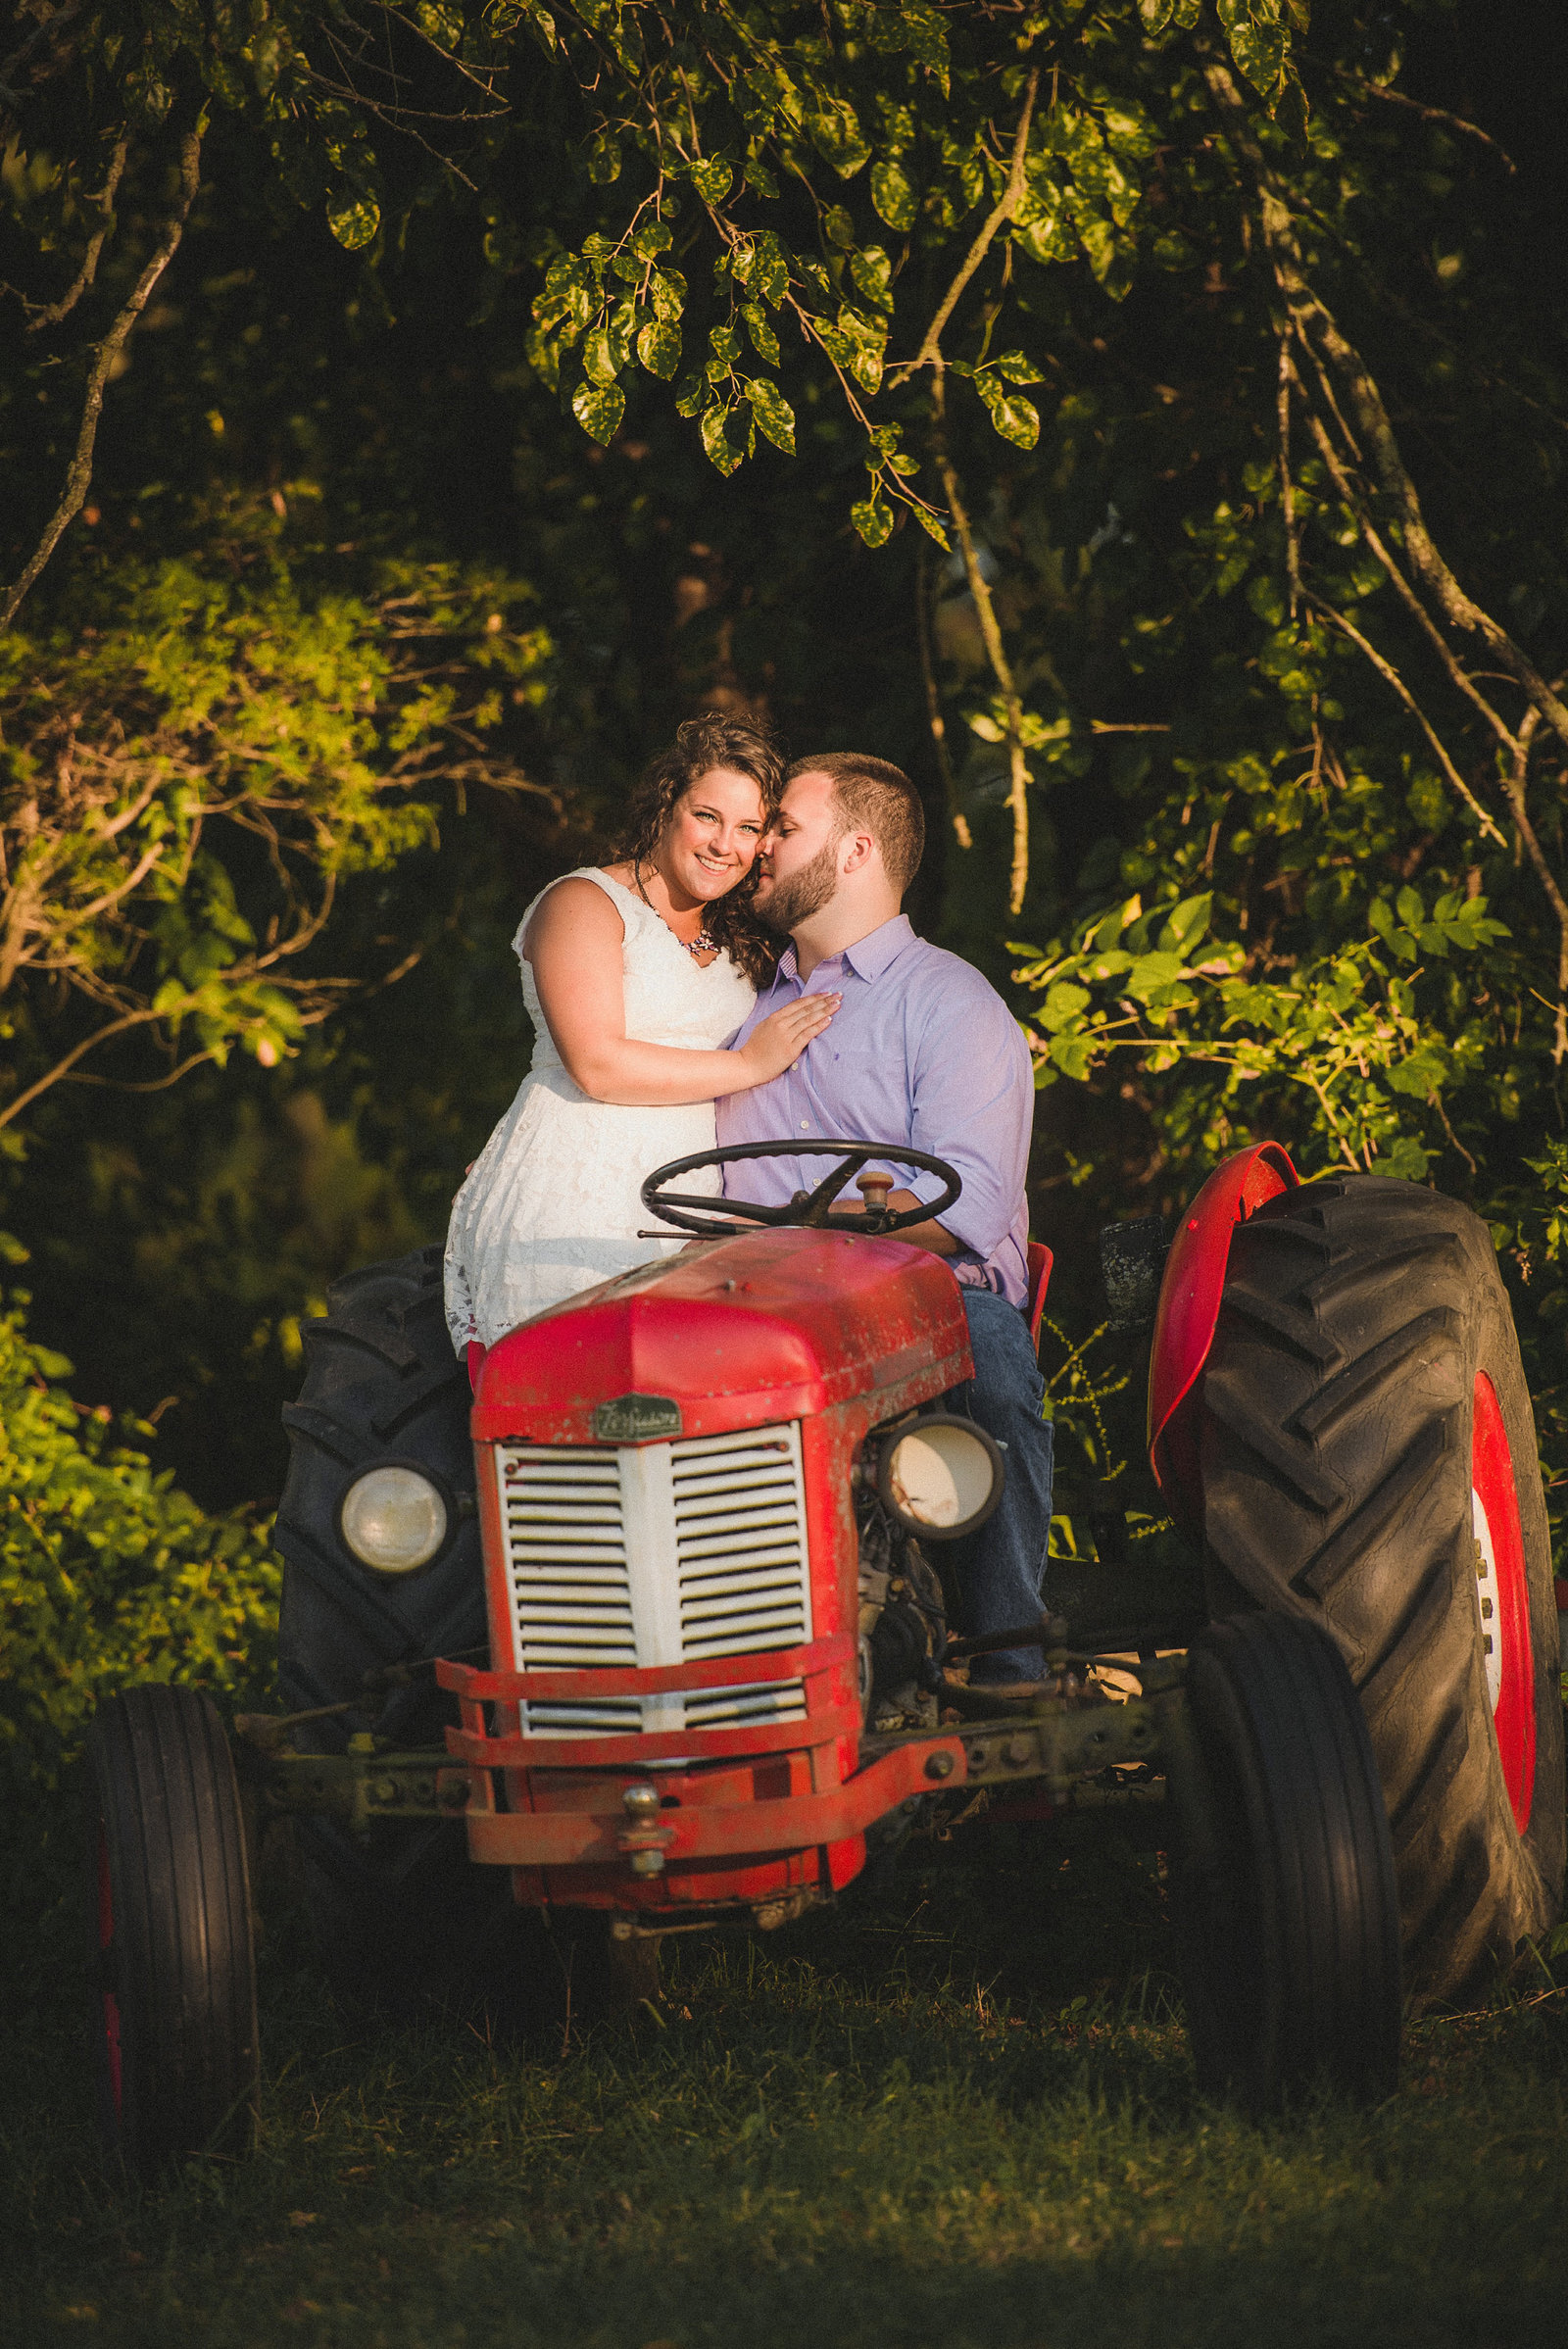 NJ_Rustic_Engagement_Photography066